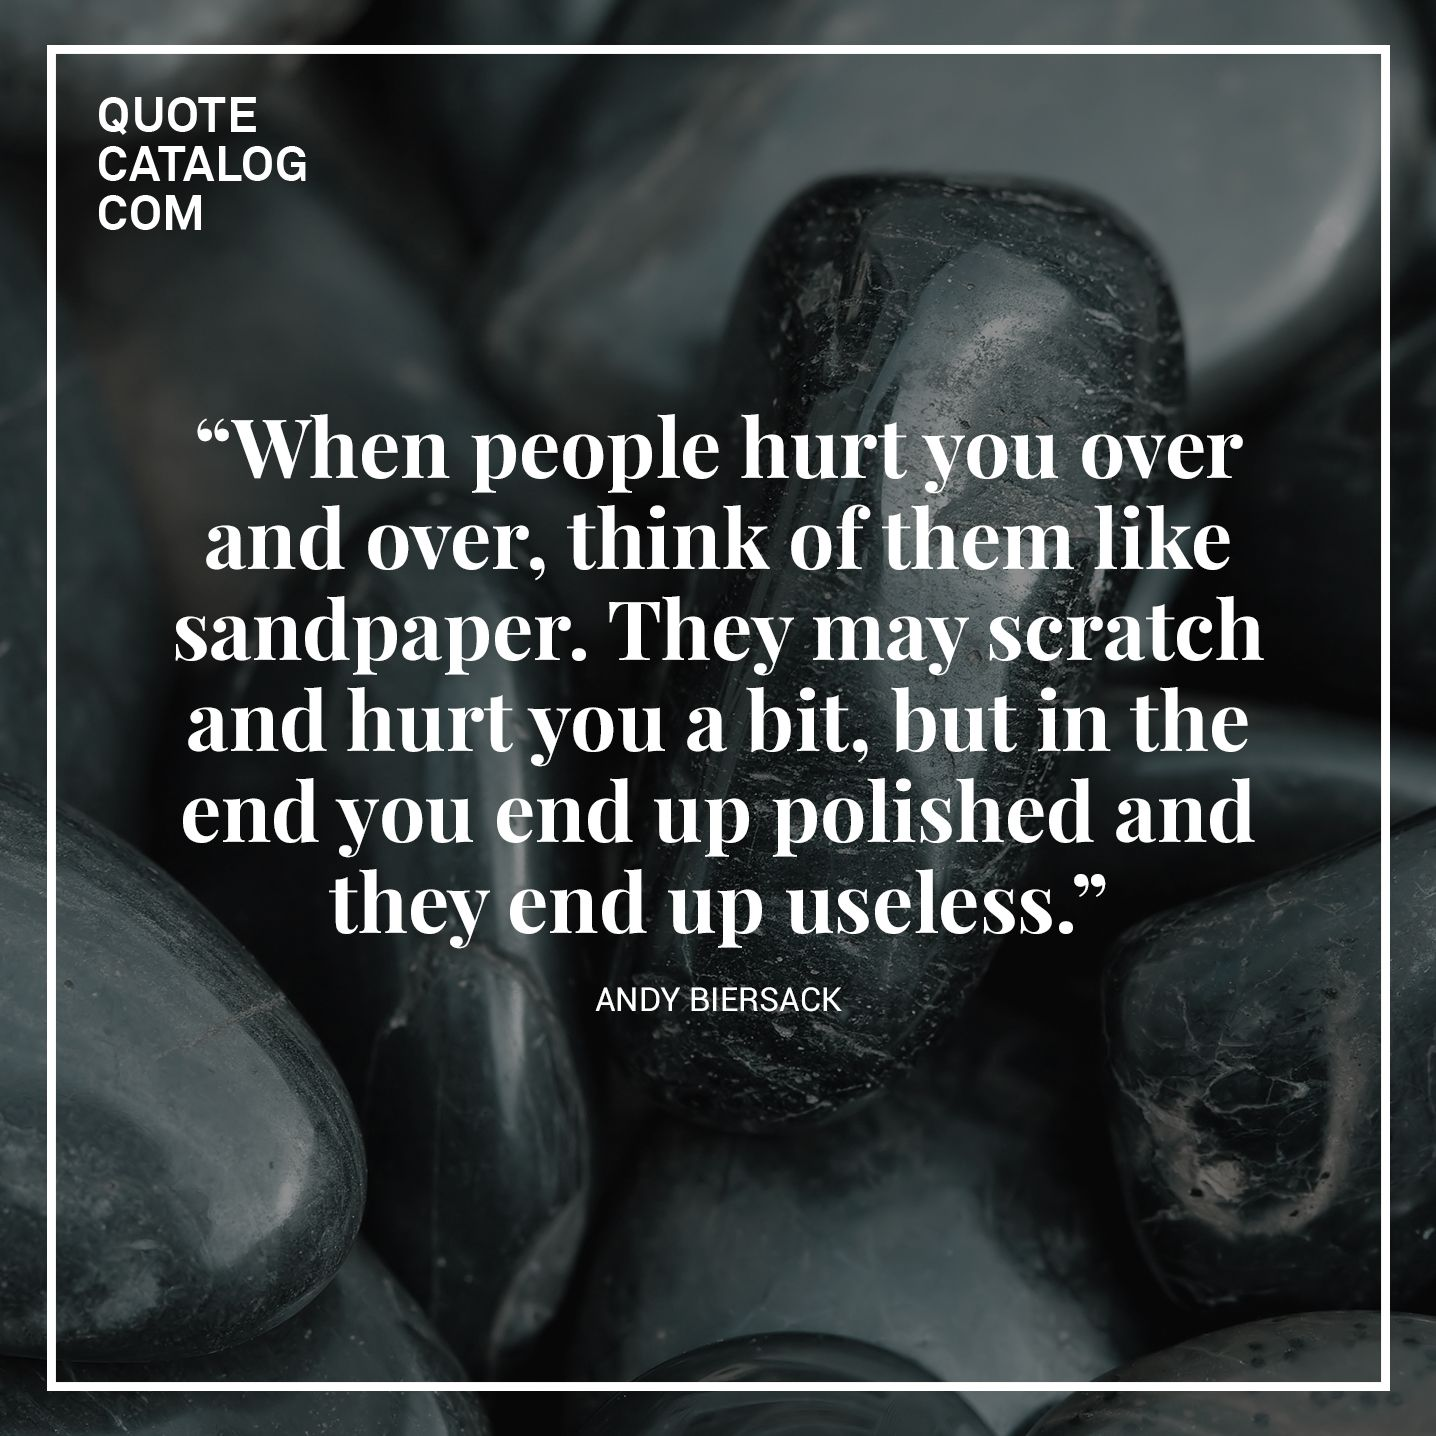 """Quotes About Someone Hurting You Over And Over: """"When People Hurt You Over And Over, Think Of Them Like"""